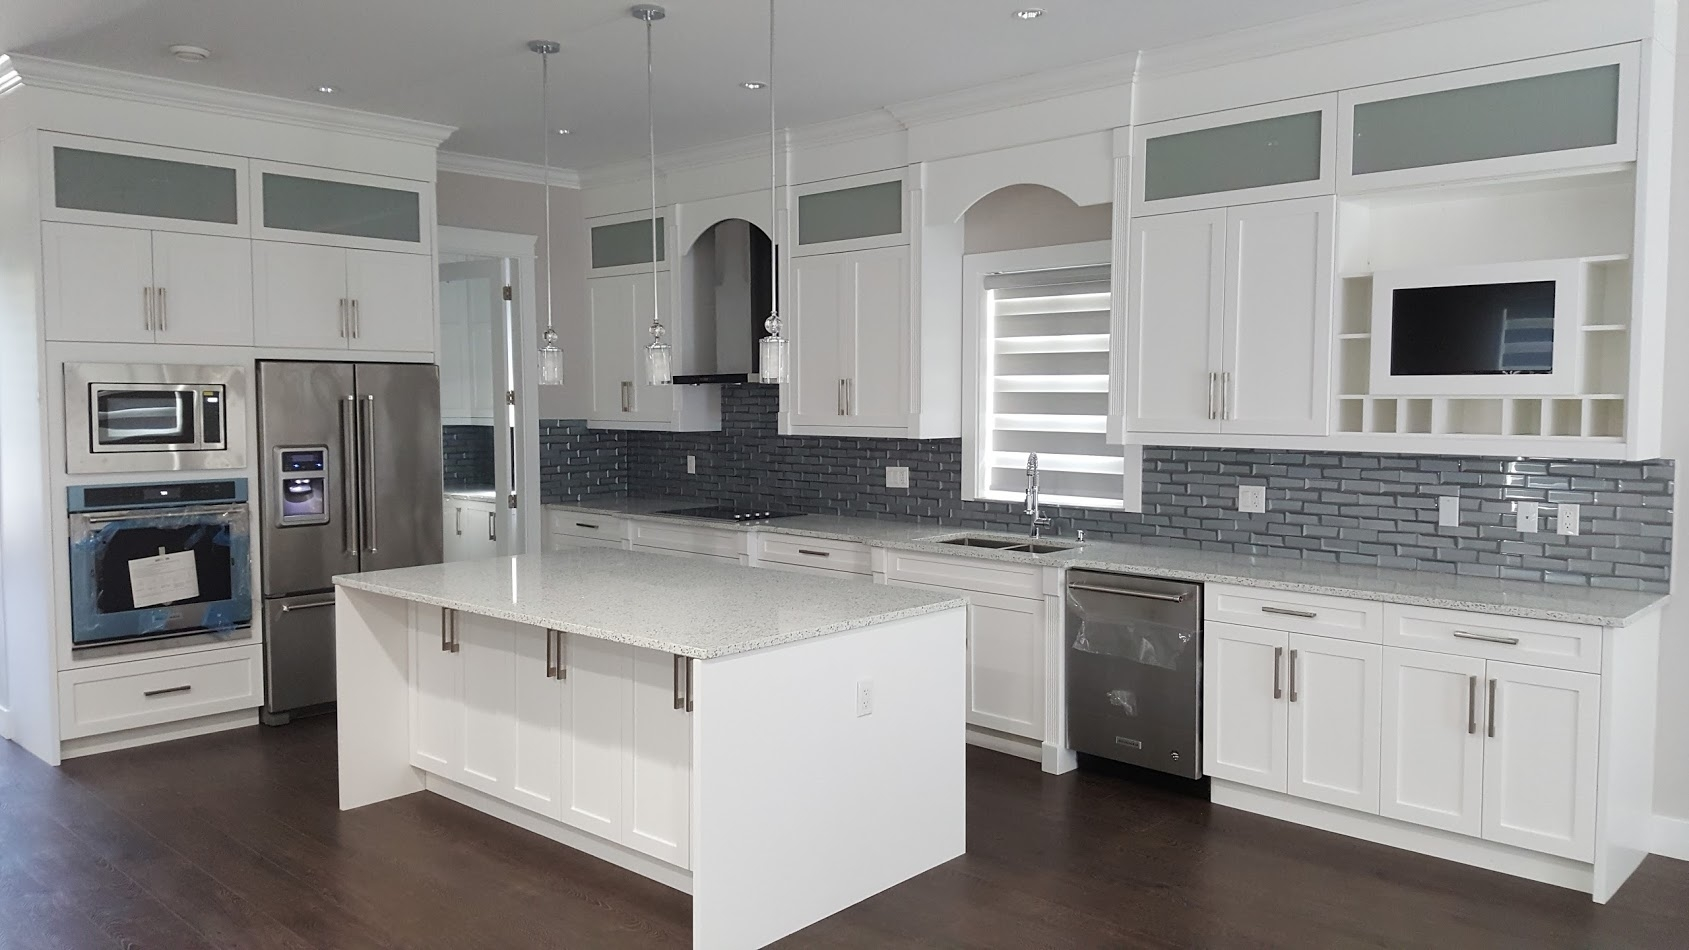 Woodpecker kitchen cabinets ltd opening hours 215 for Bathroom cabinets surrey bc